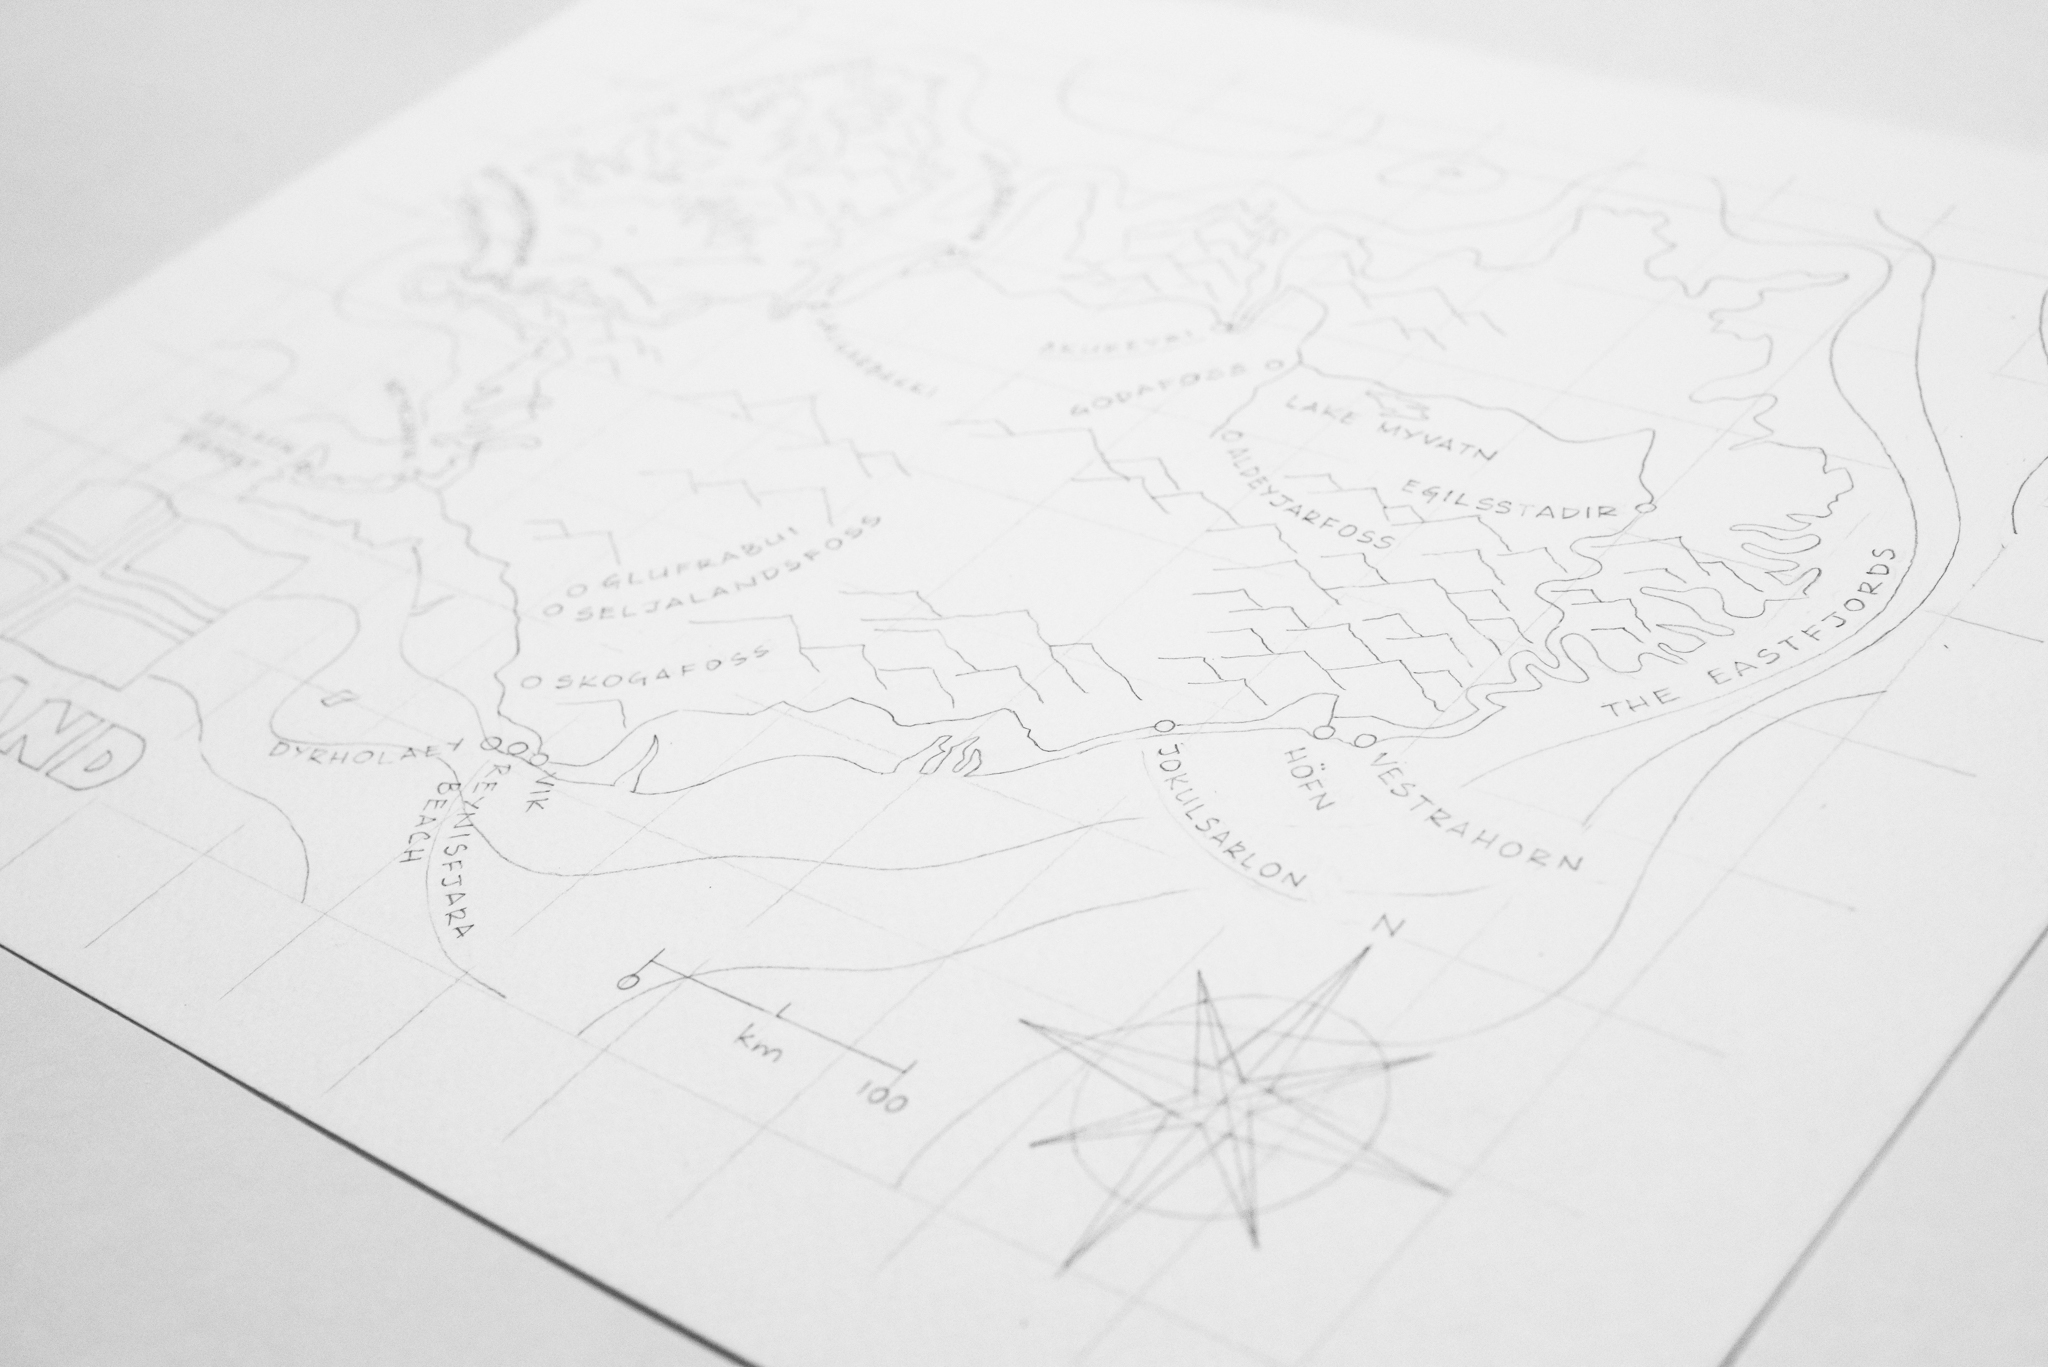 Next, I added the places we visited along the way, as well as some features to make the map more interesting. I also pencilled in some depth contours in the ocean to add more character.